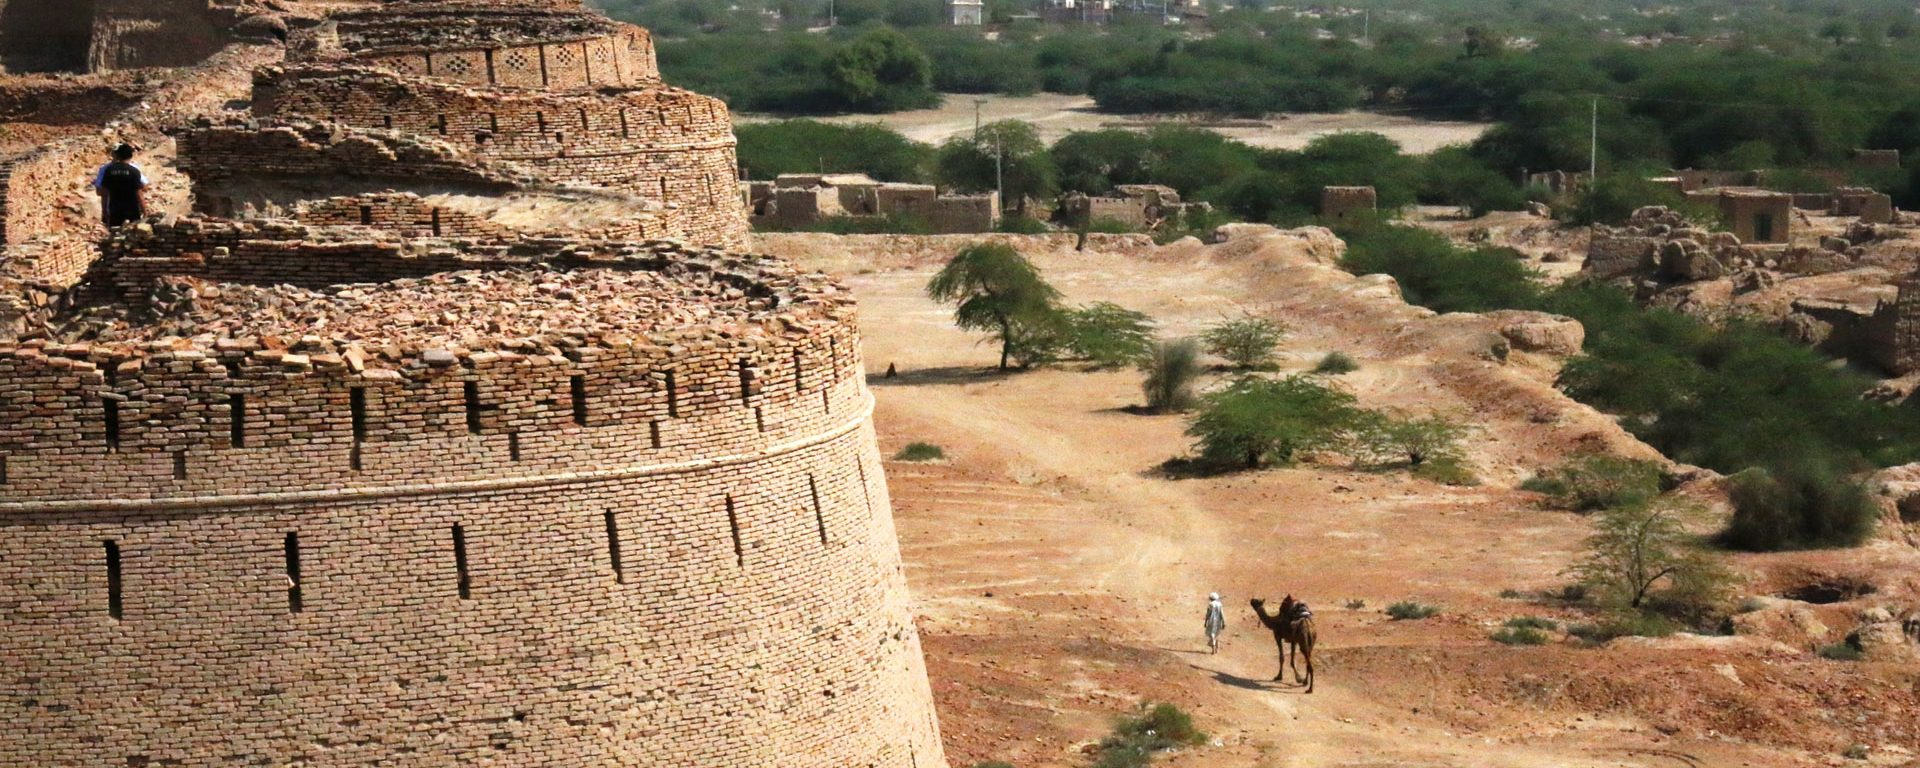 Man with camel walks outside Derawar Fort in Bahawalpur, Pakistan